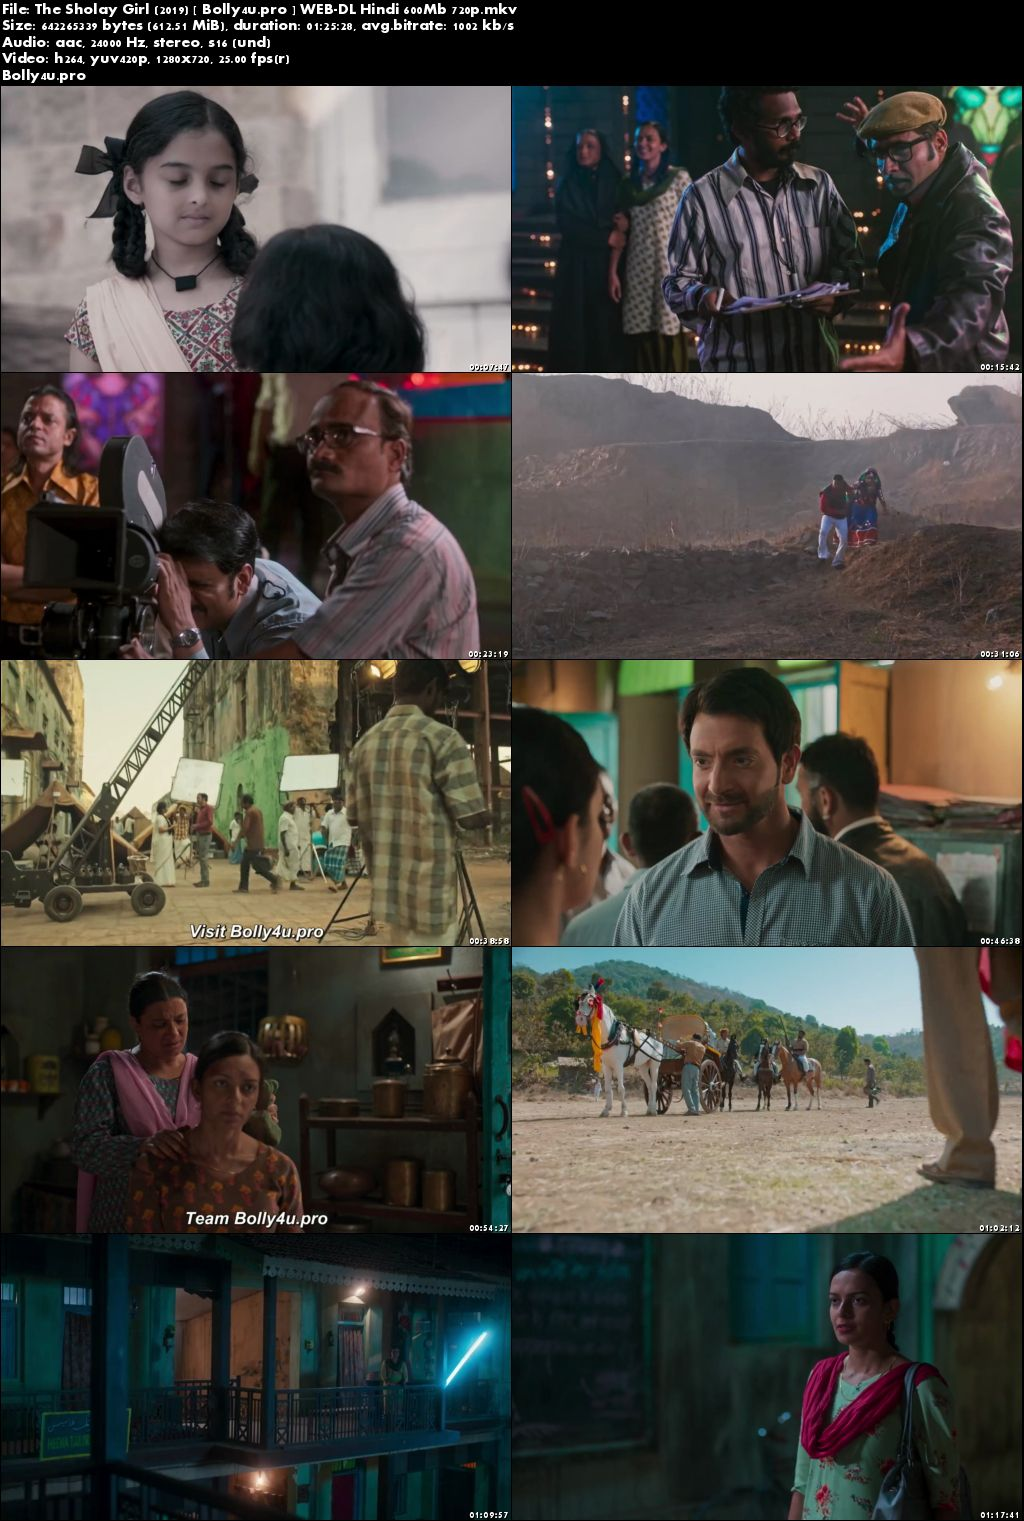 The Sholay Girl 2019 WEB-DL 600Mb Hindi 720p x264 Download